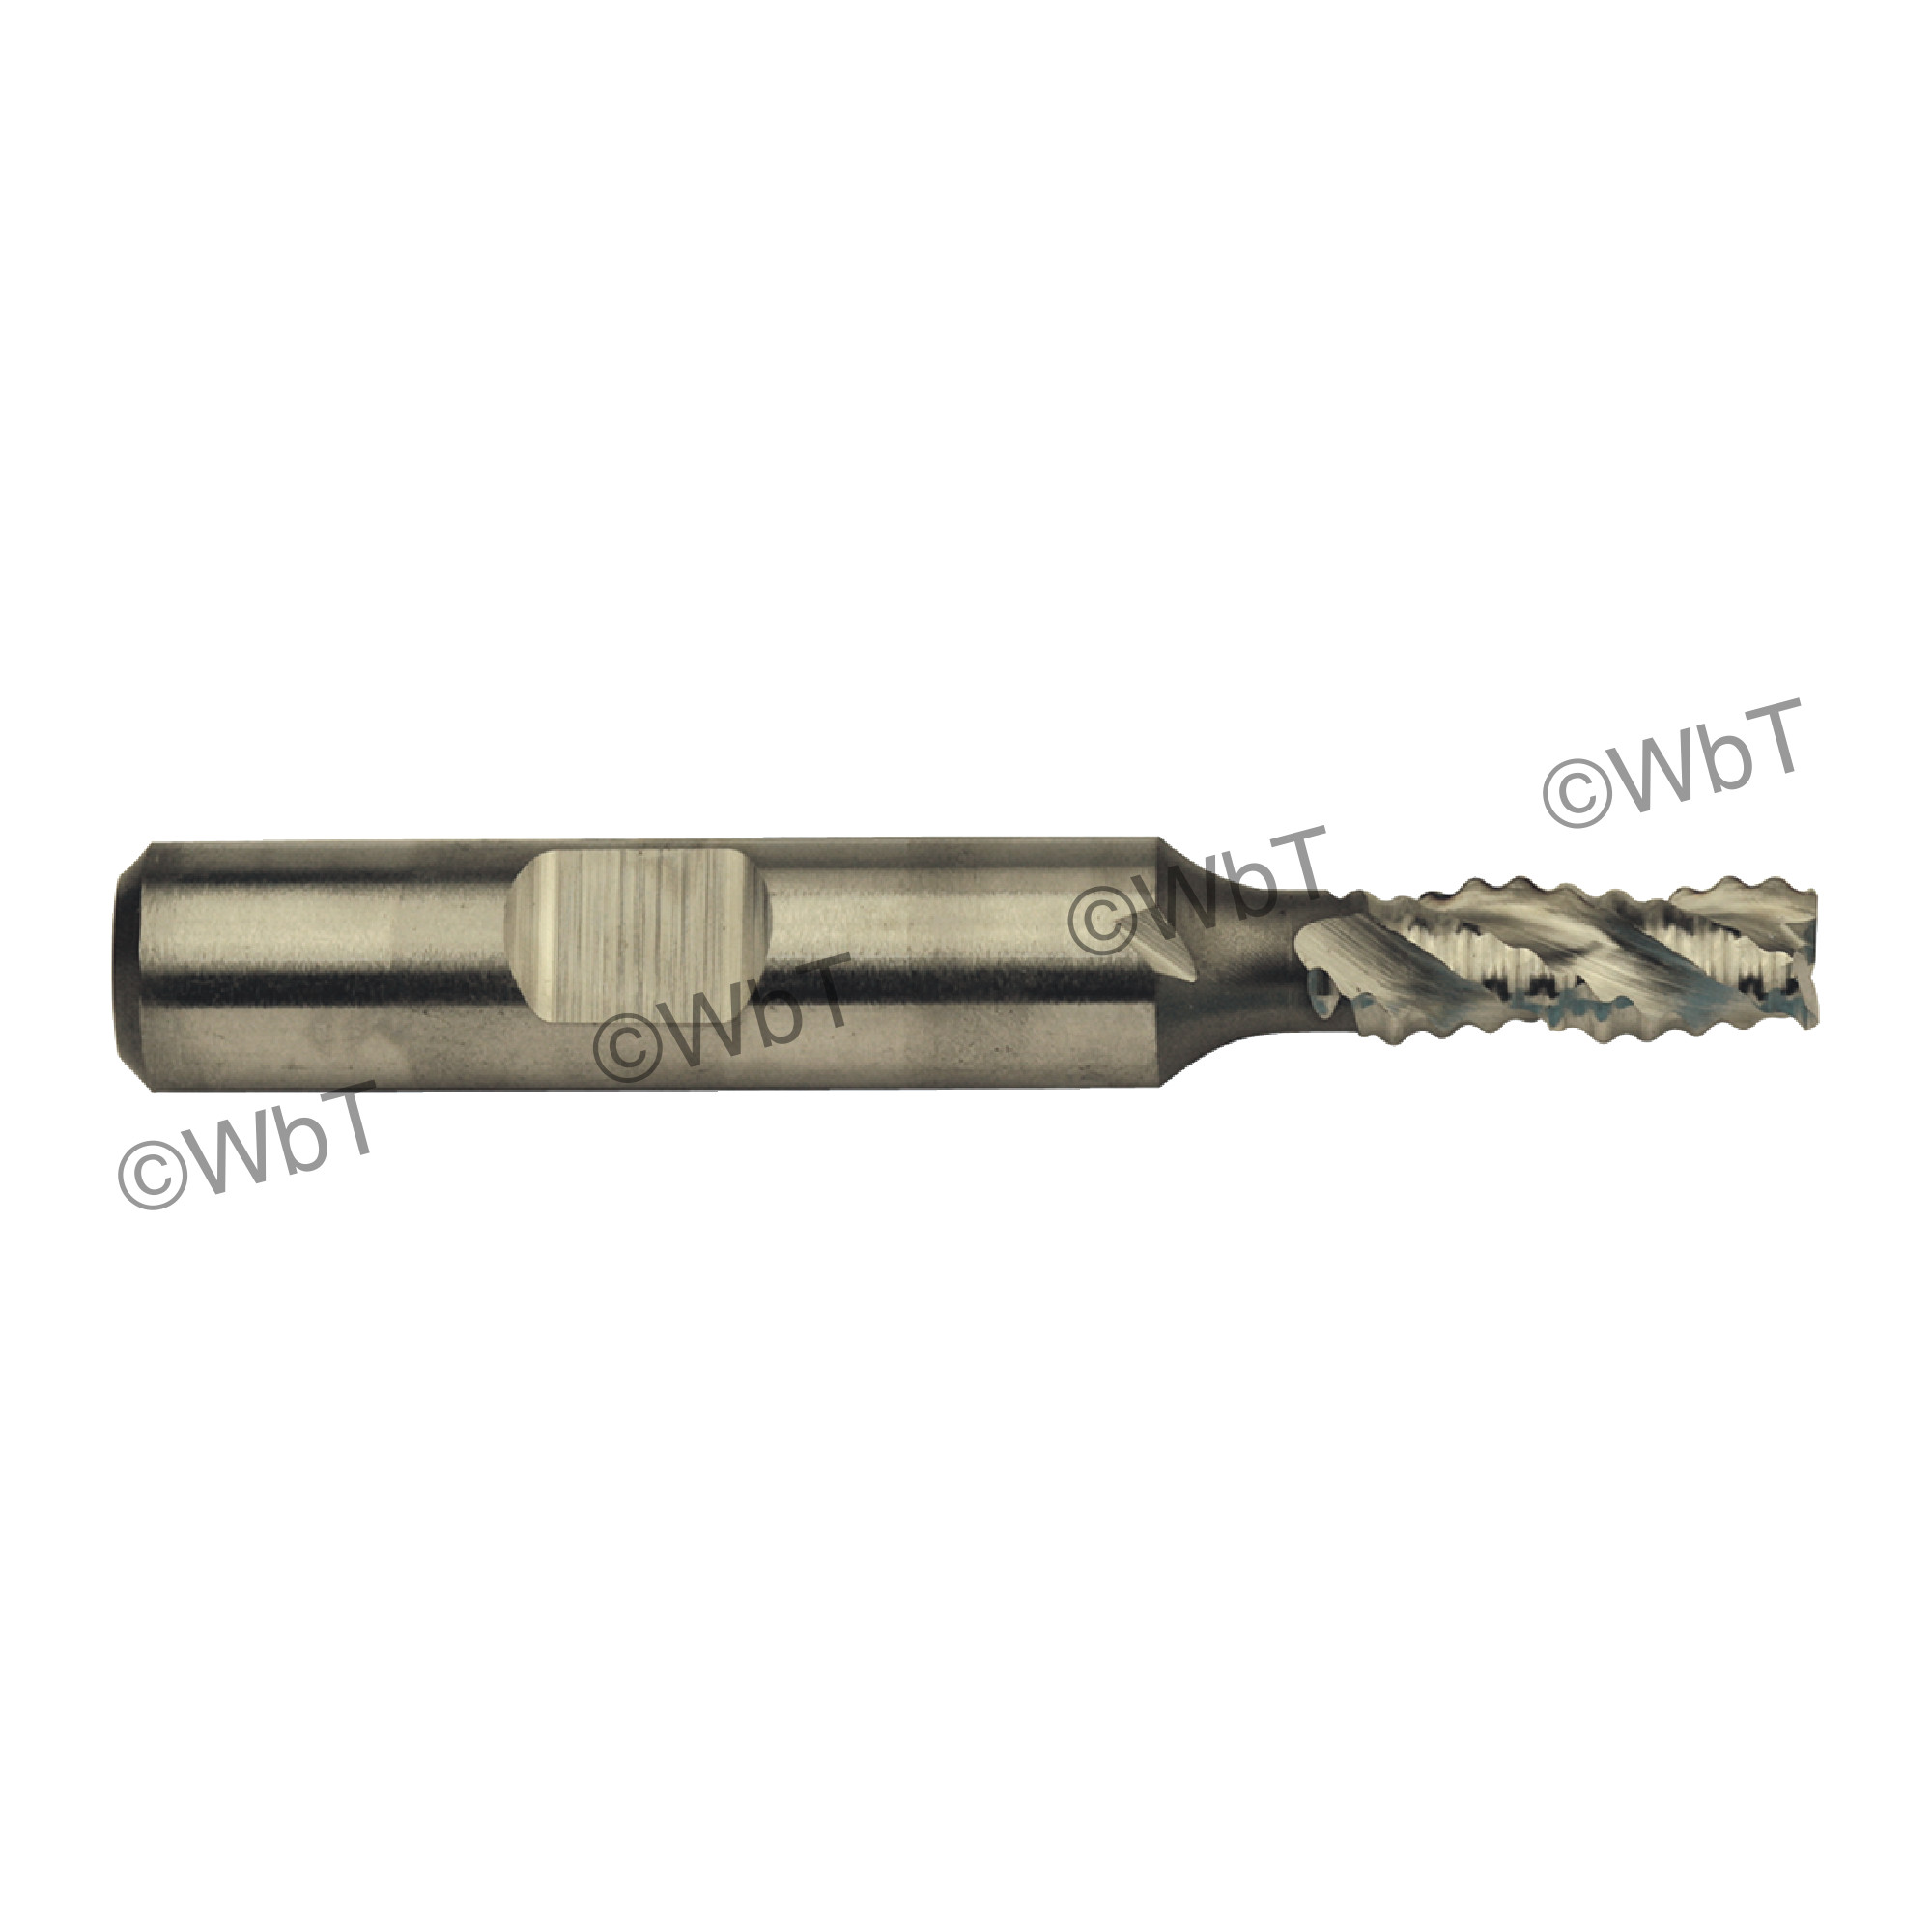 3 Flute M42 8% Cobalt Coarse Pitch Roughing Single End Mill